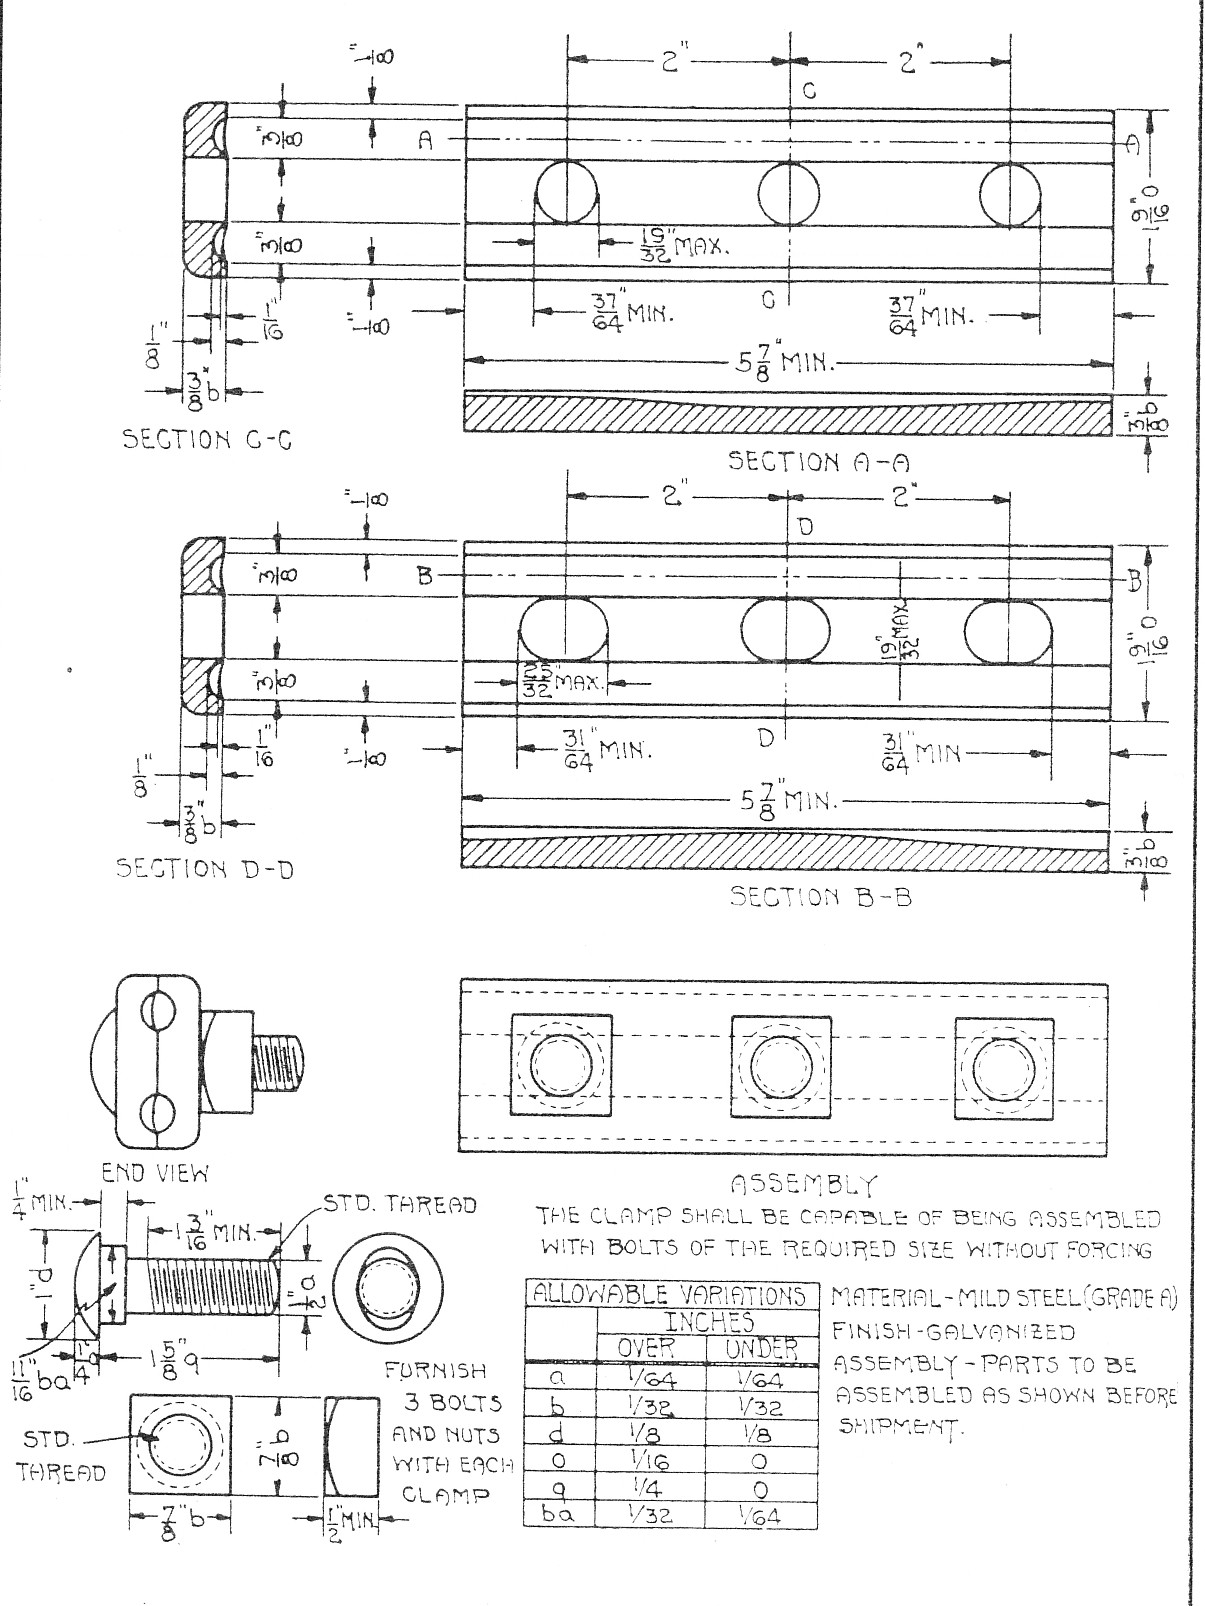 Admirable Signal Stat 800 Wiring Diagram As Well On 192 Signal Stat Wiring Wiring Digital Resources Anistprontobusorg